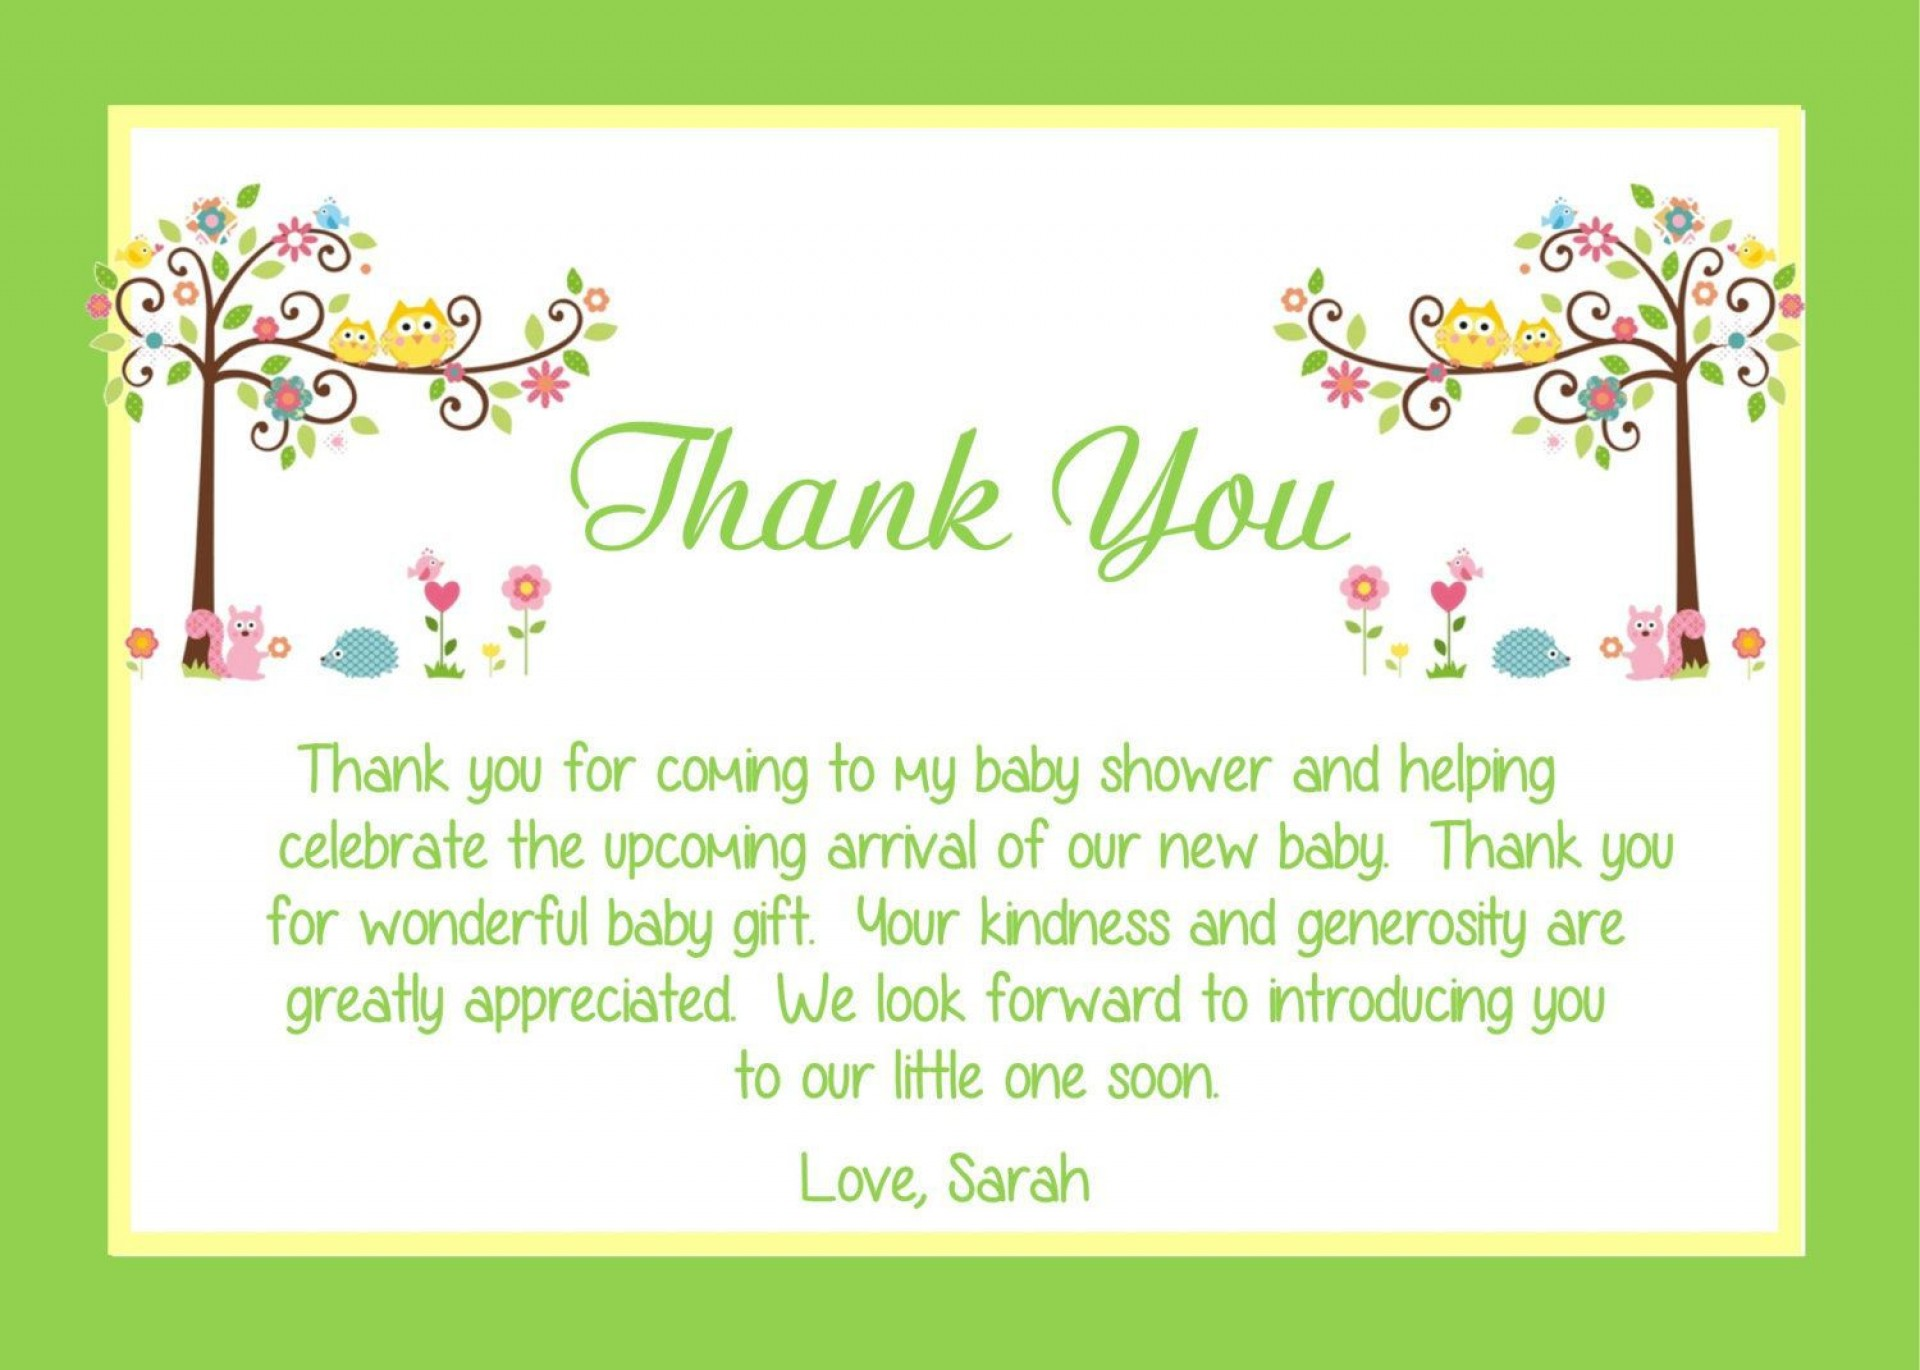 002 Fascinating Thank You Note Template For Baby Shower Gift High Def  Card Letter Sample1920